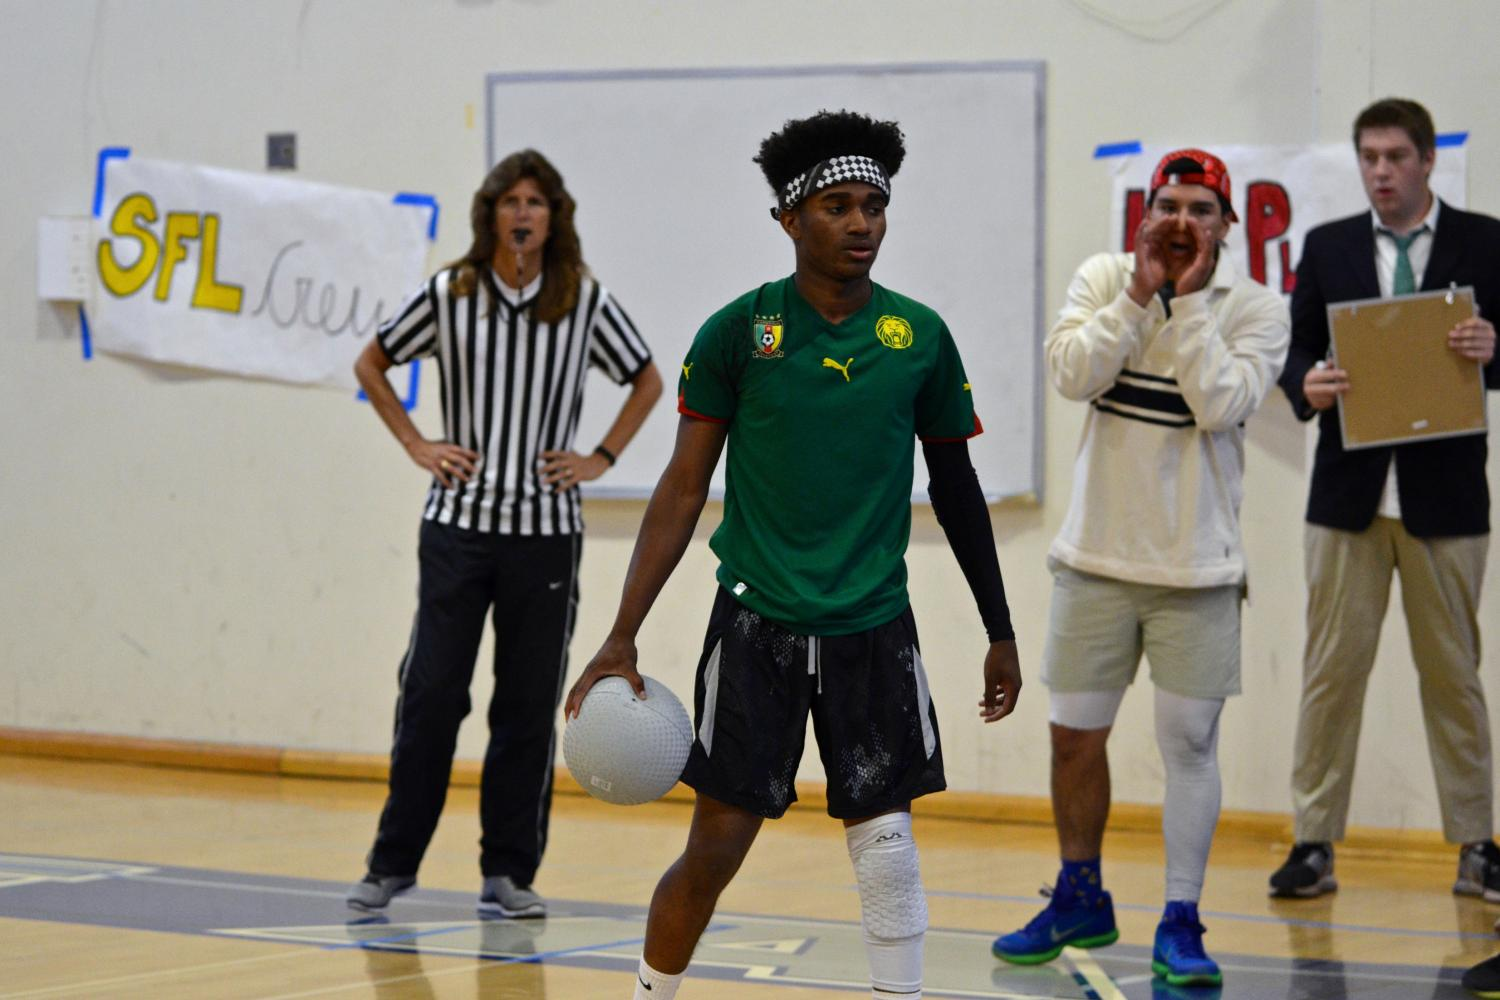 Goodwill Hunter's senior Ahmad Washington , with teammate senior Max Higareda cheering him on in the background, gears up to throw against the Globo Gym Purple Cobras in the championship match.